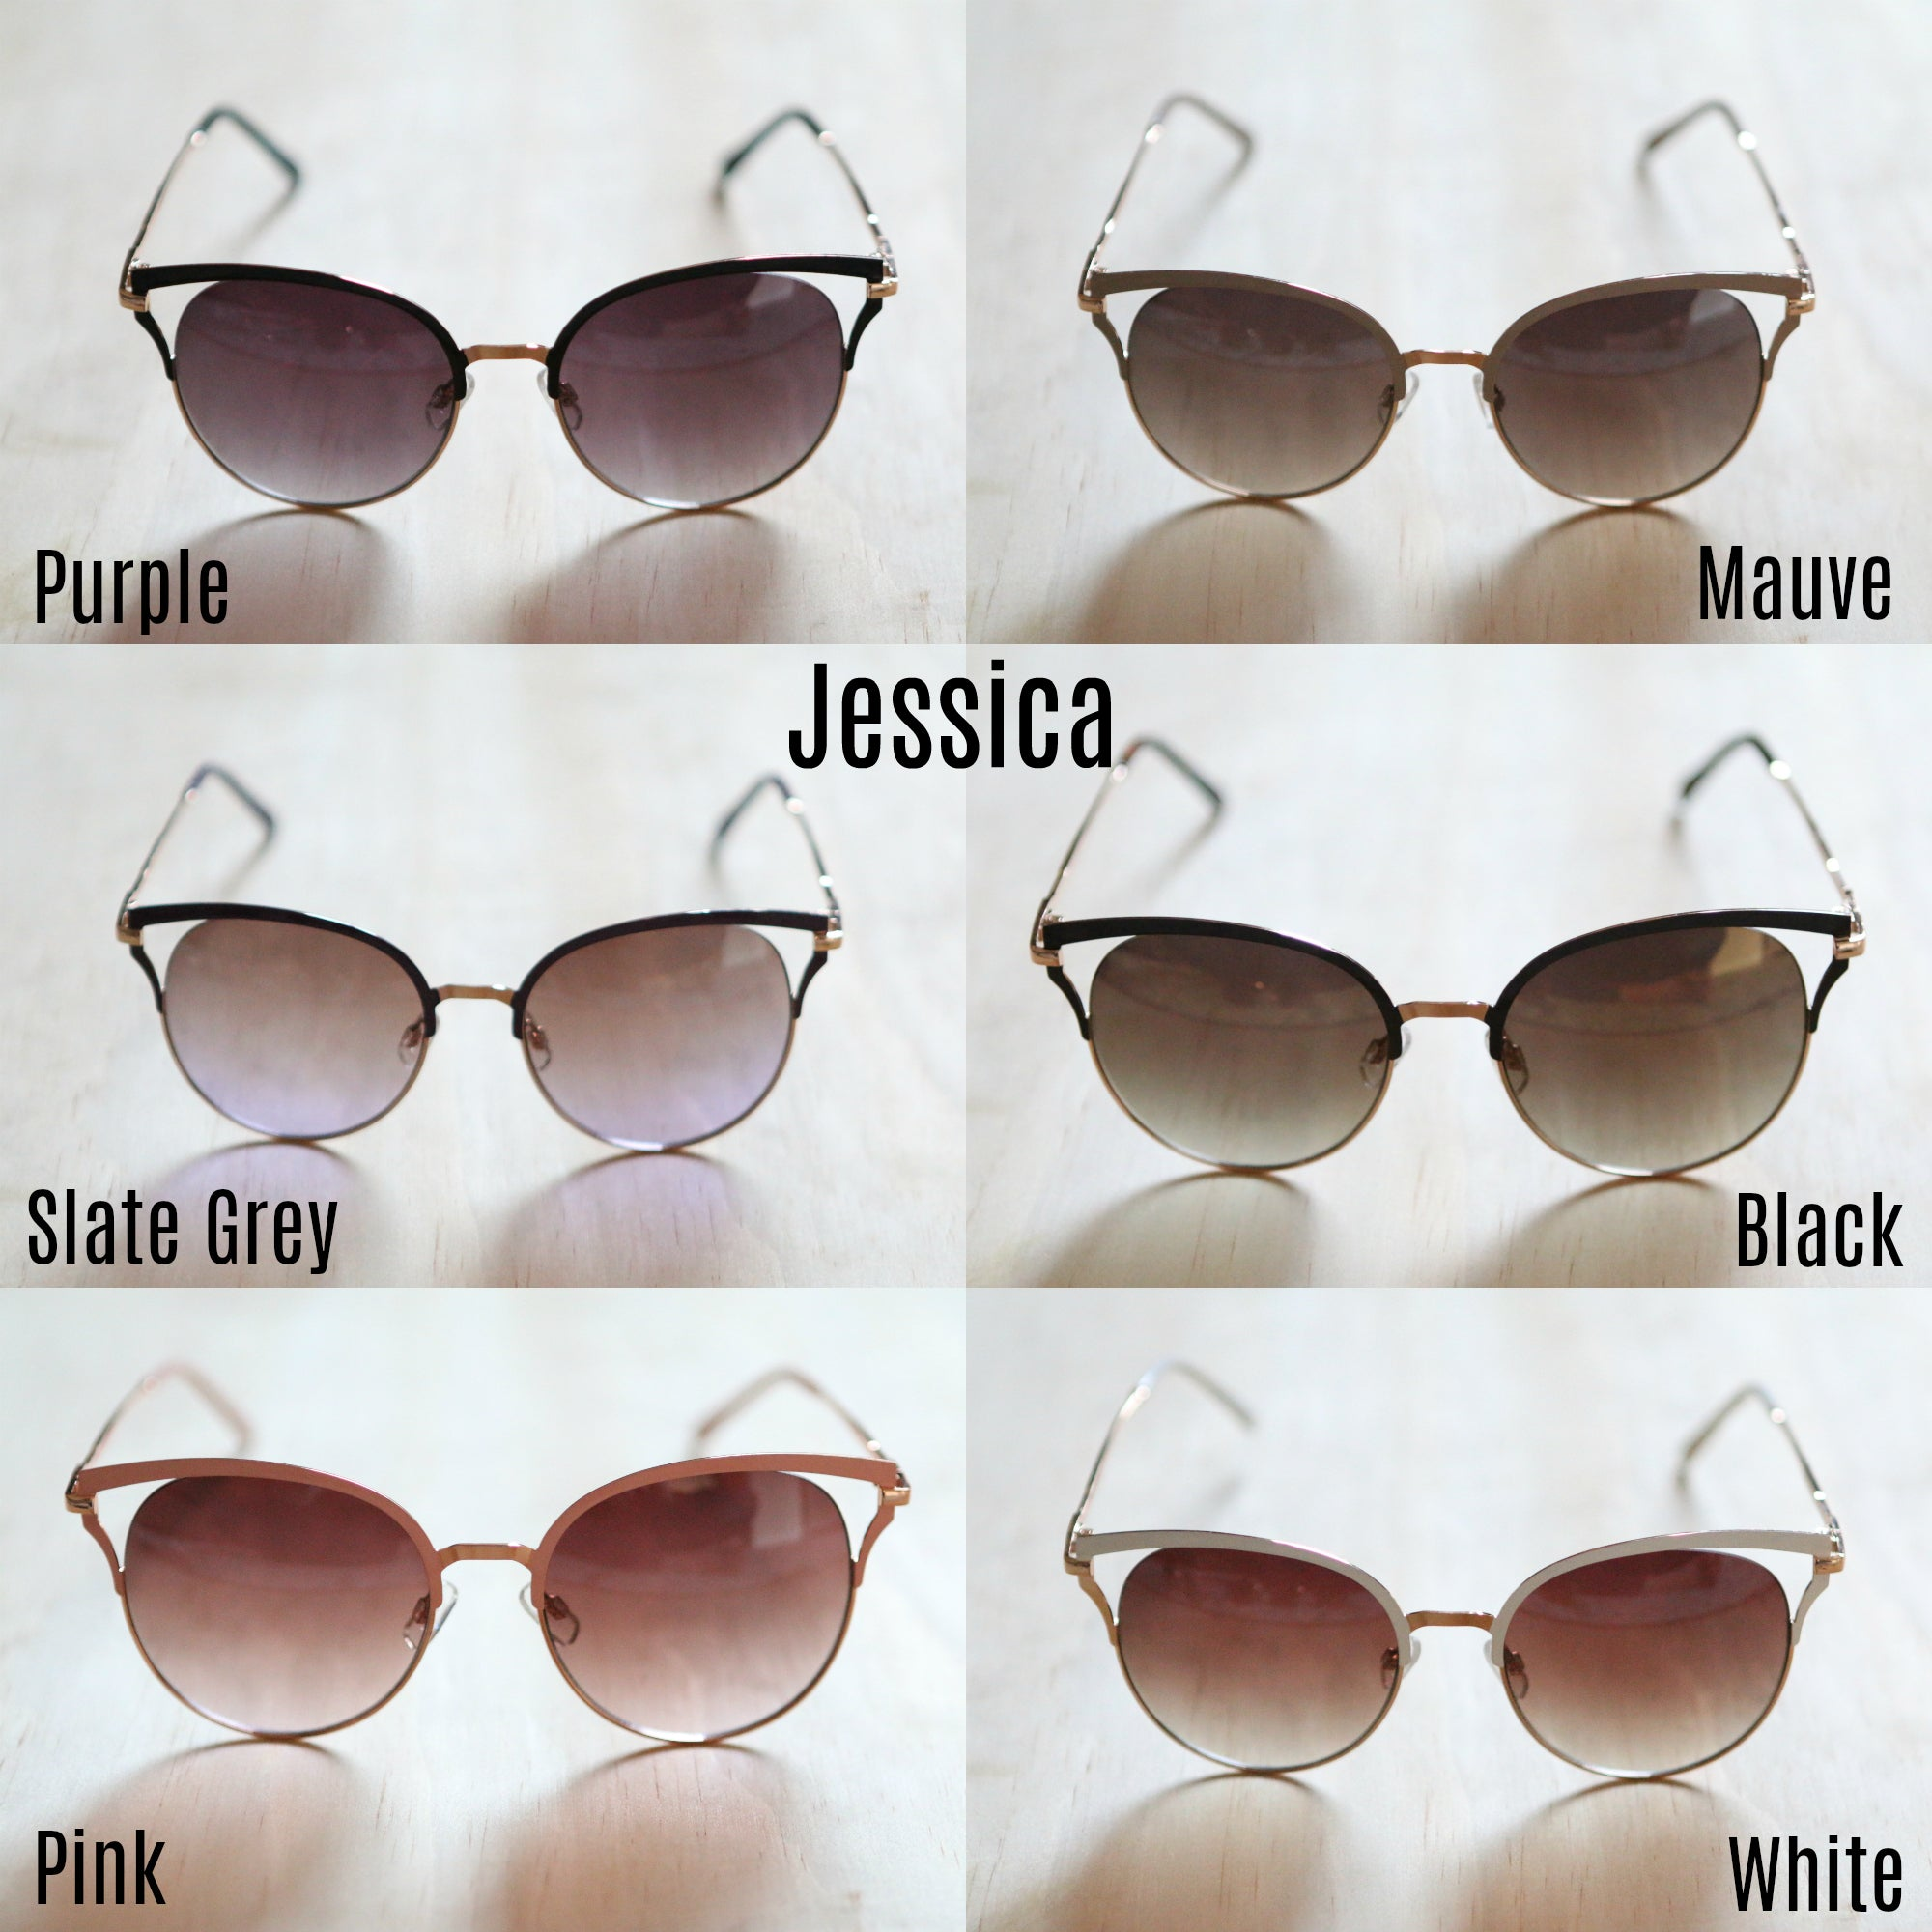 Jessica Sunglasses